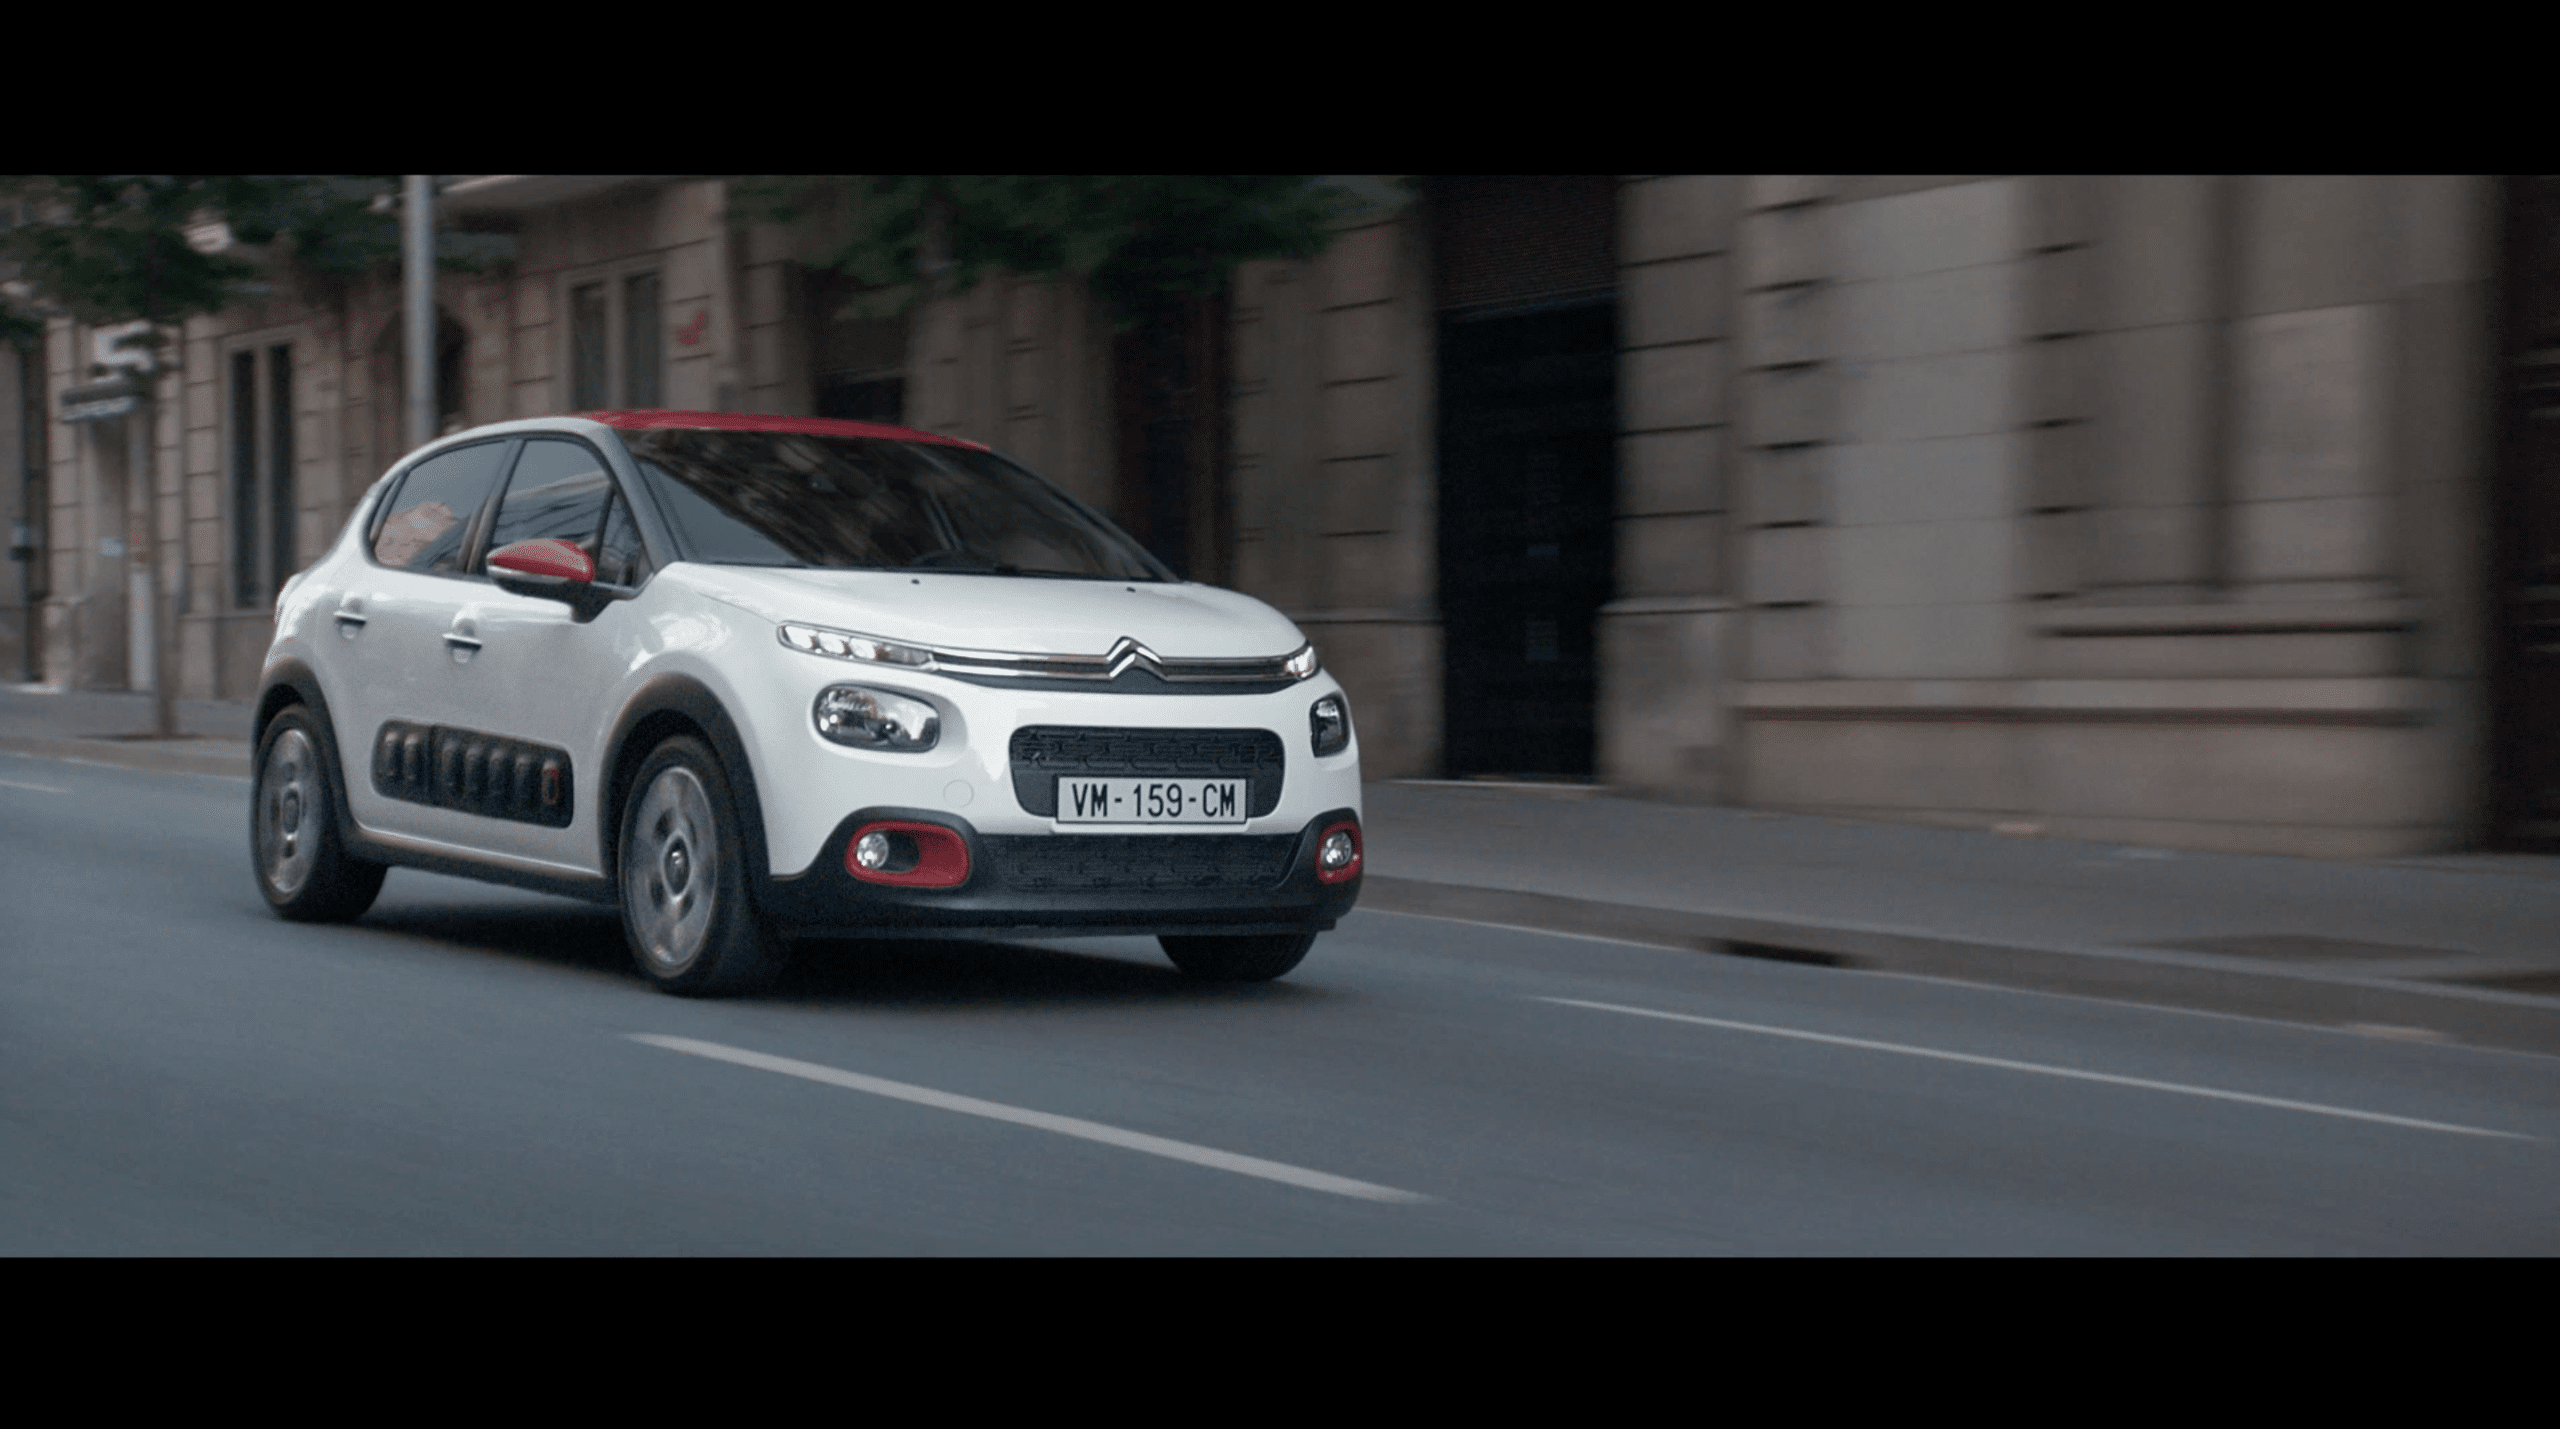 Citroen-Inspired-by-You